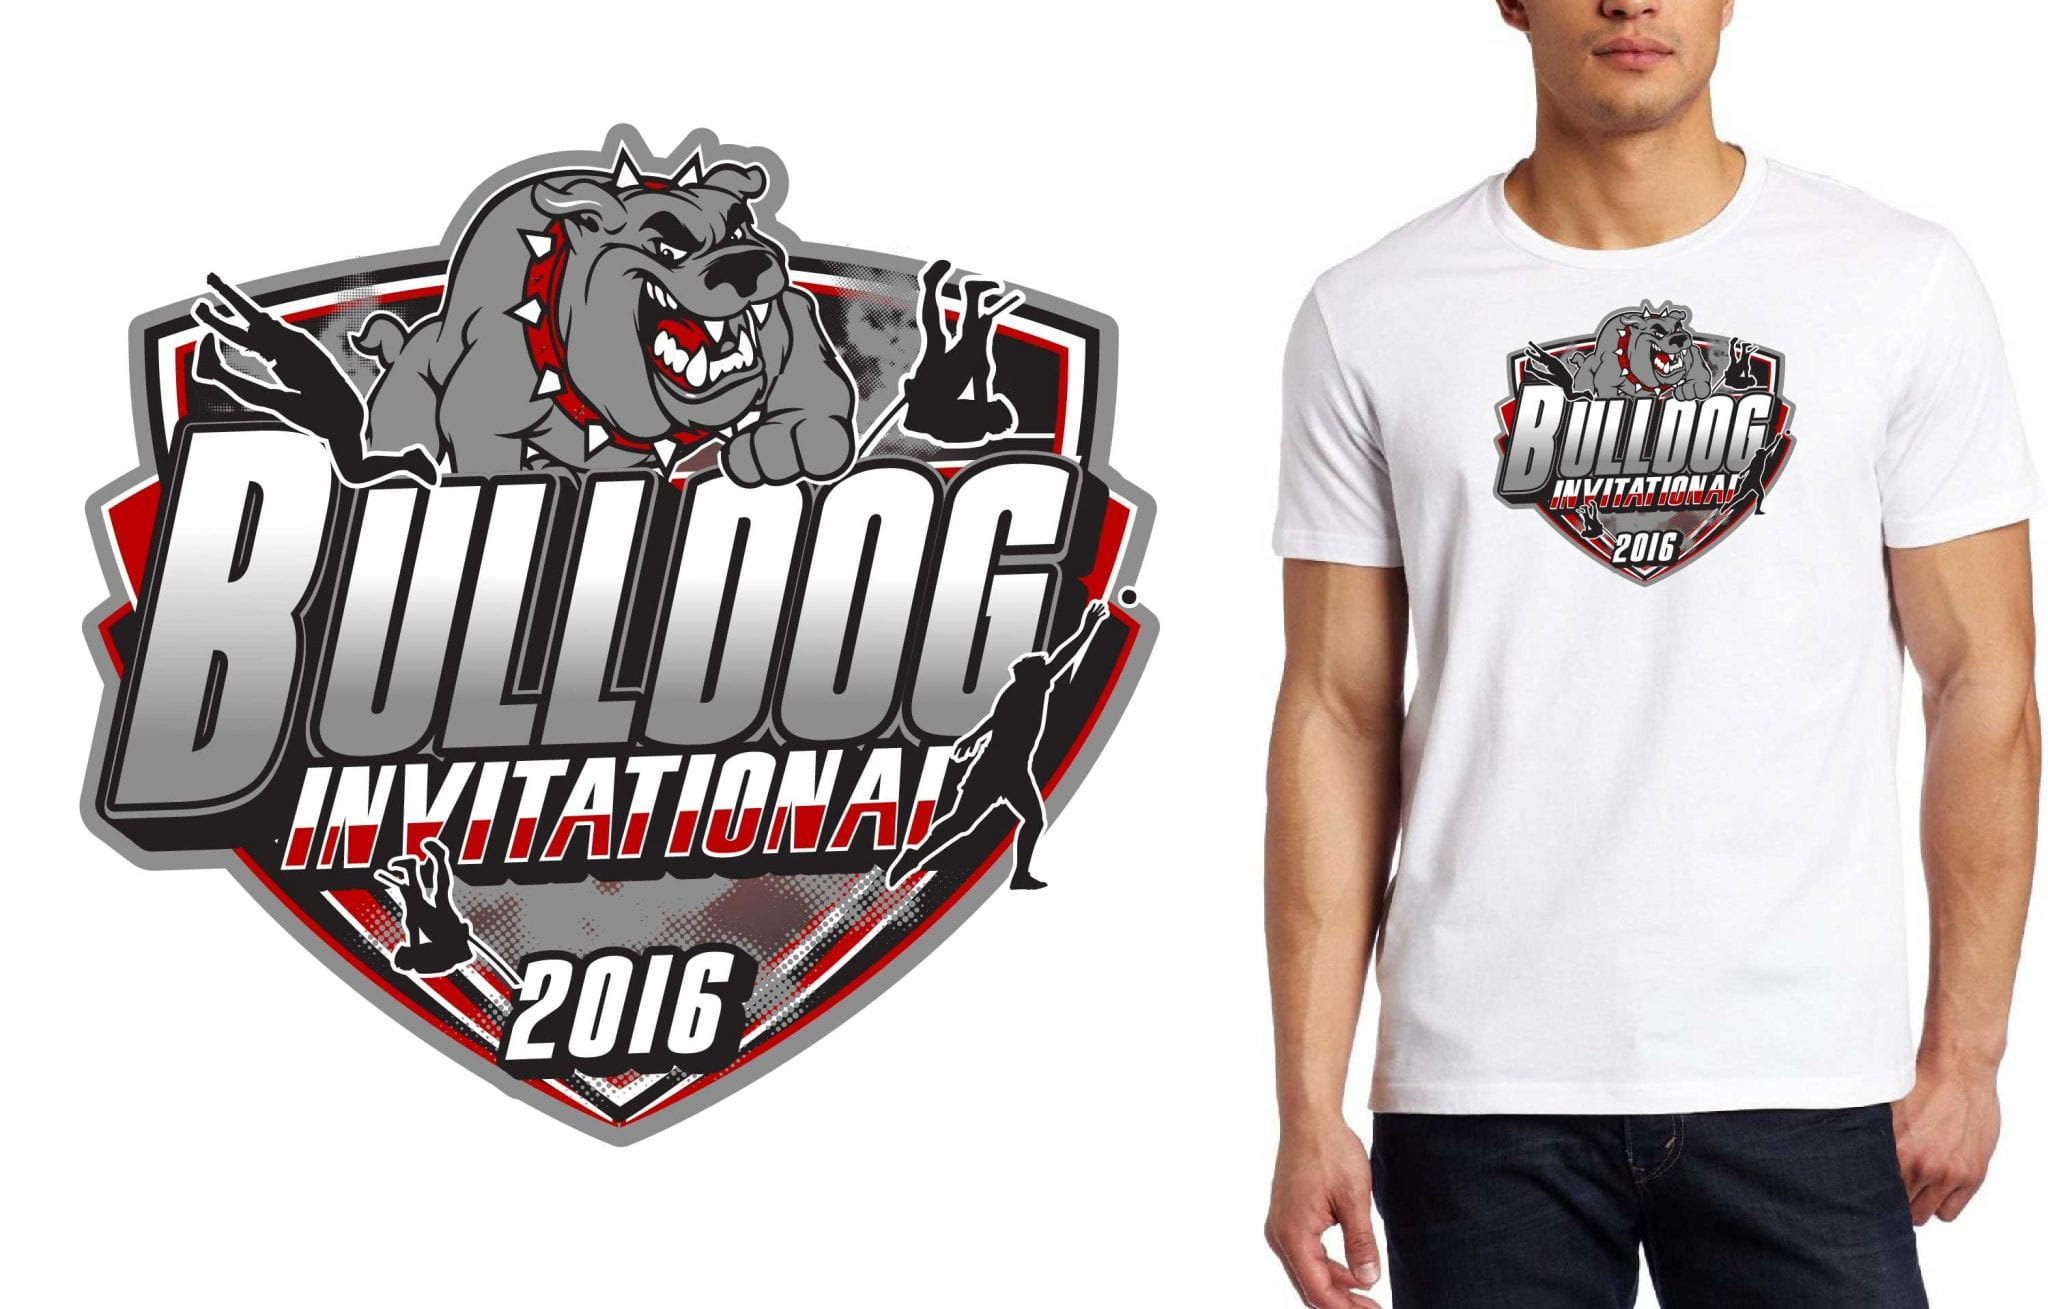 2016 Bulldog Invitational track and field vector logo event